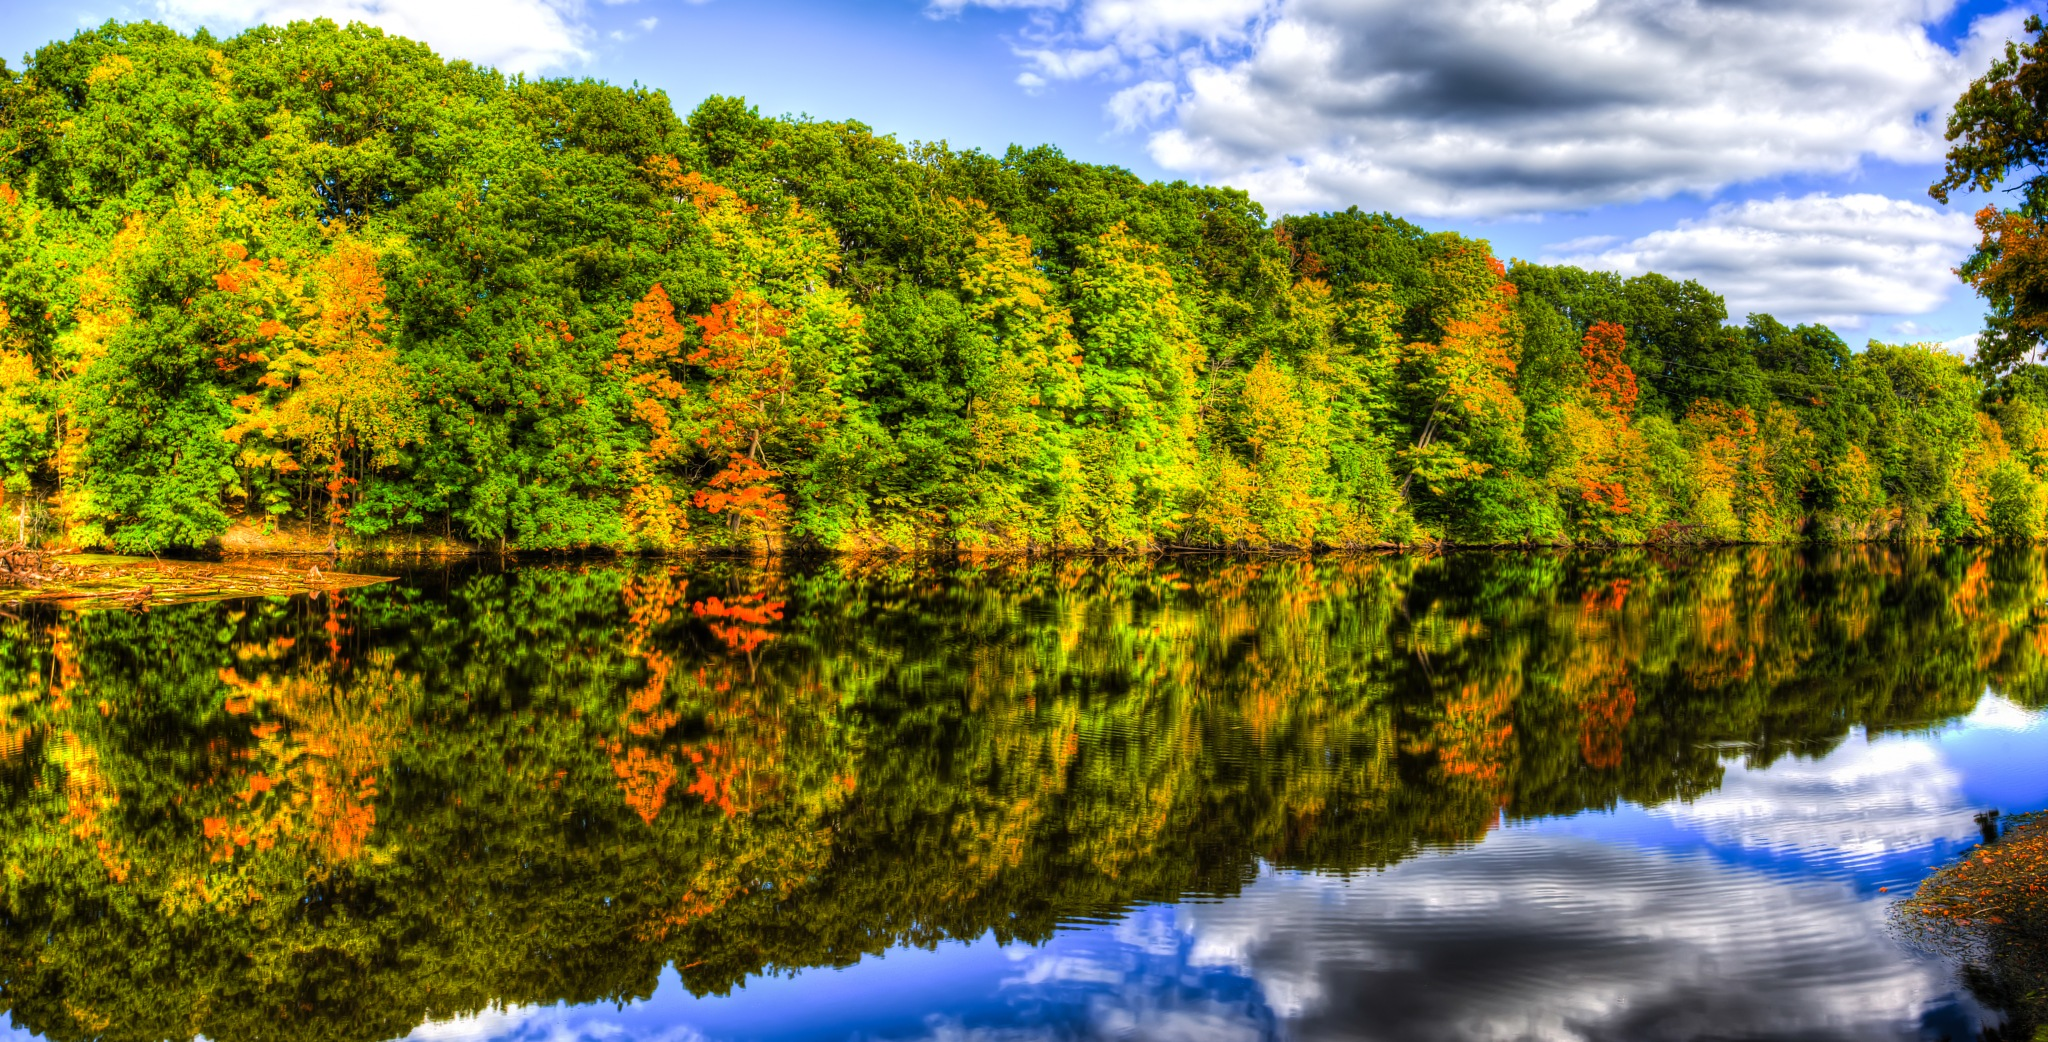 Early Fall by AmanPhotos